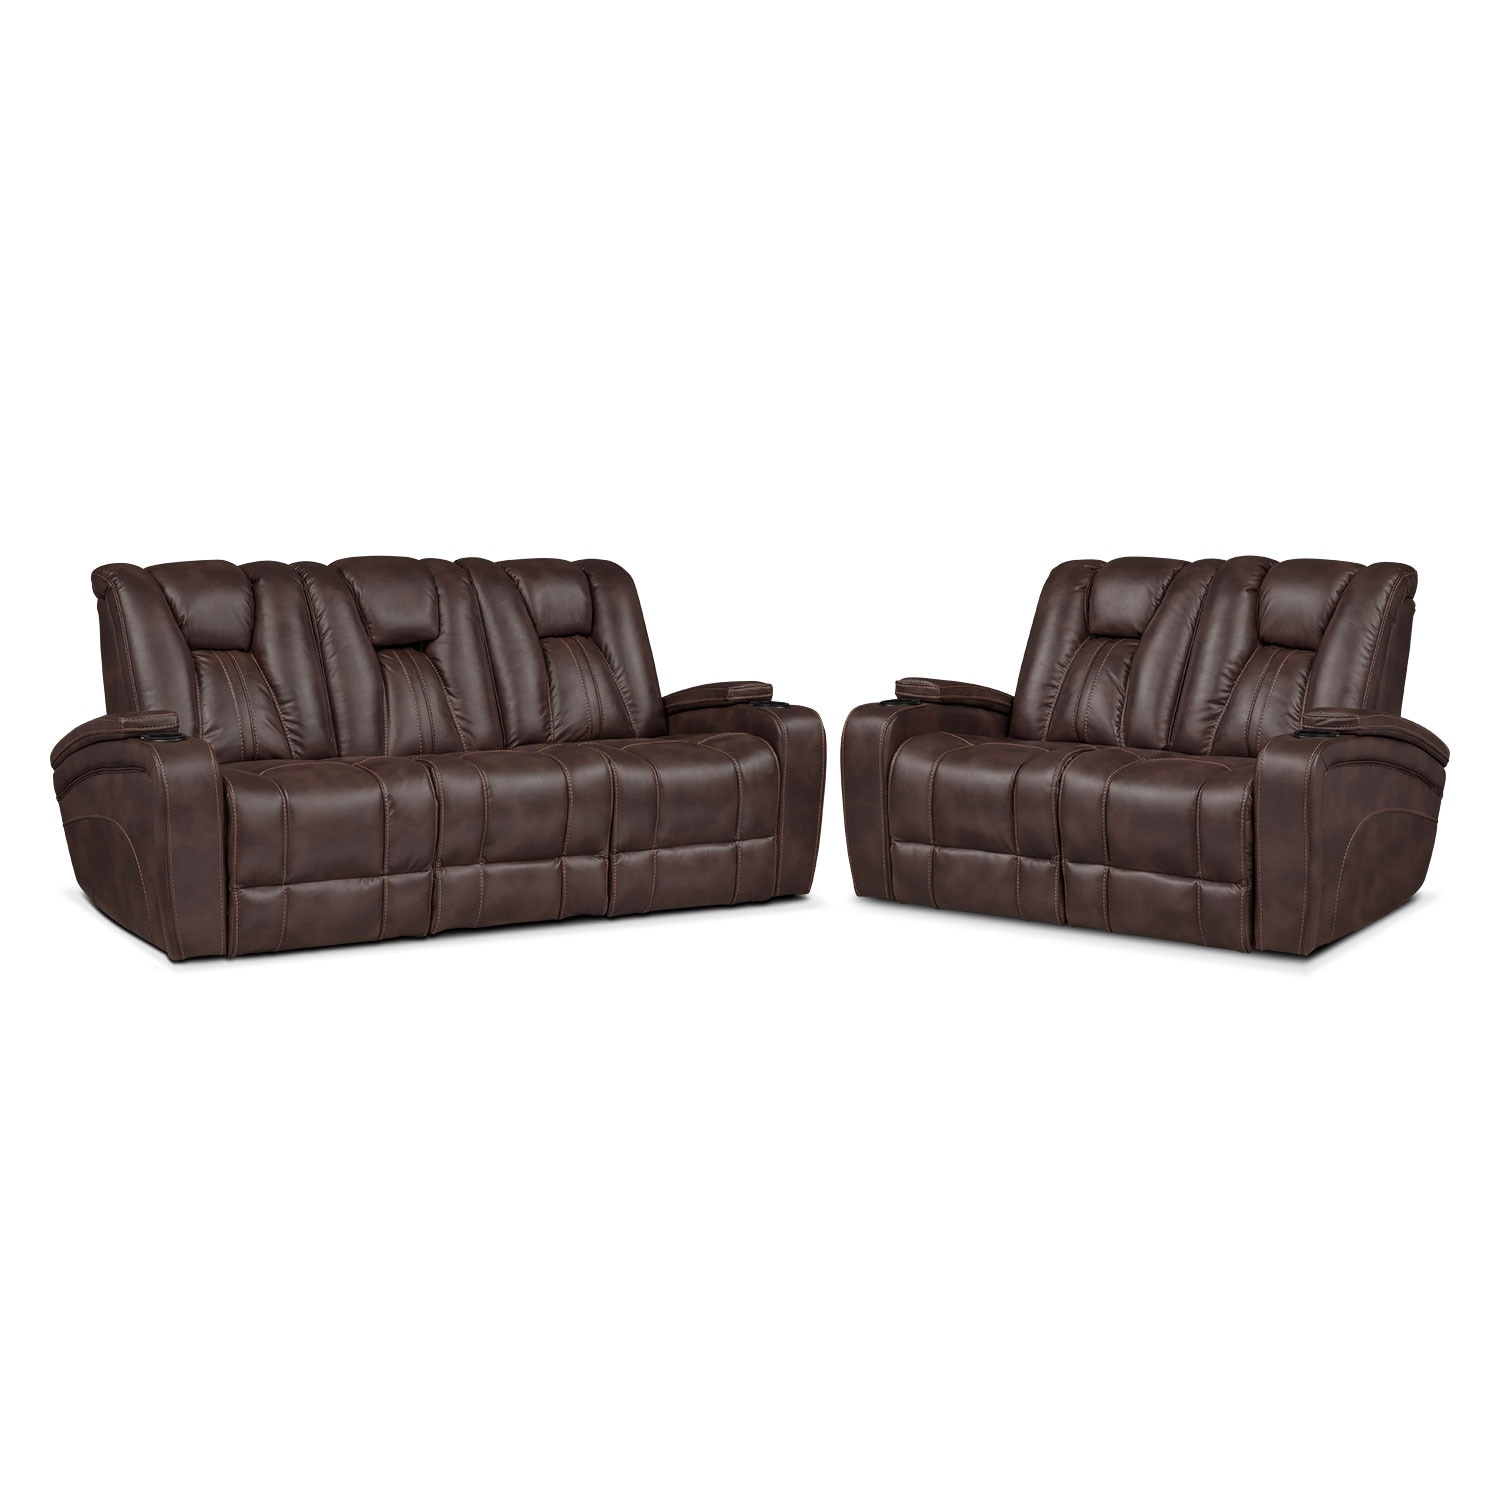 Living Room Furniture - Pulsar Dual Power Reclining Sofa and Dual Power Reclining Loveseat Set - Brown